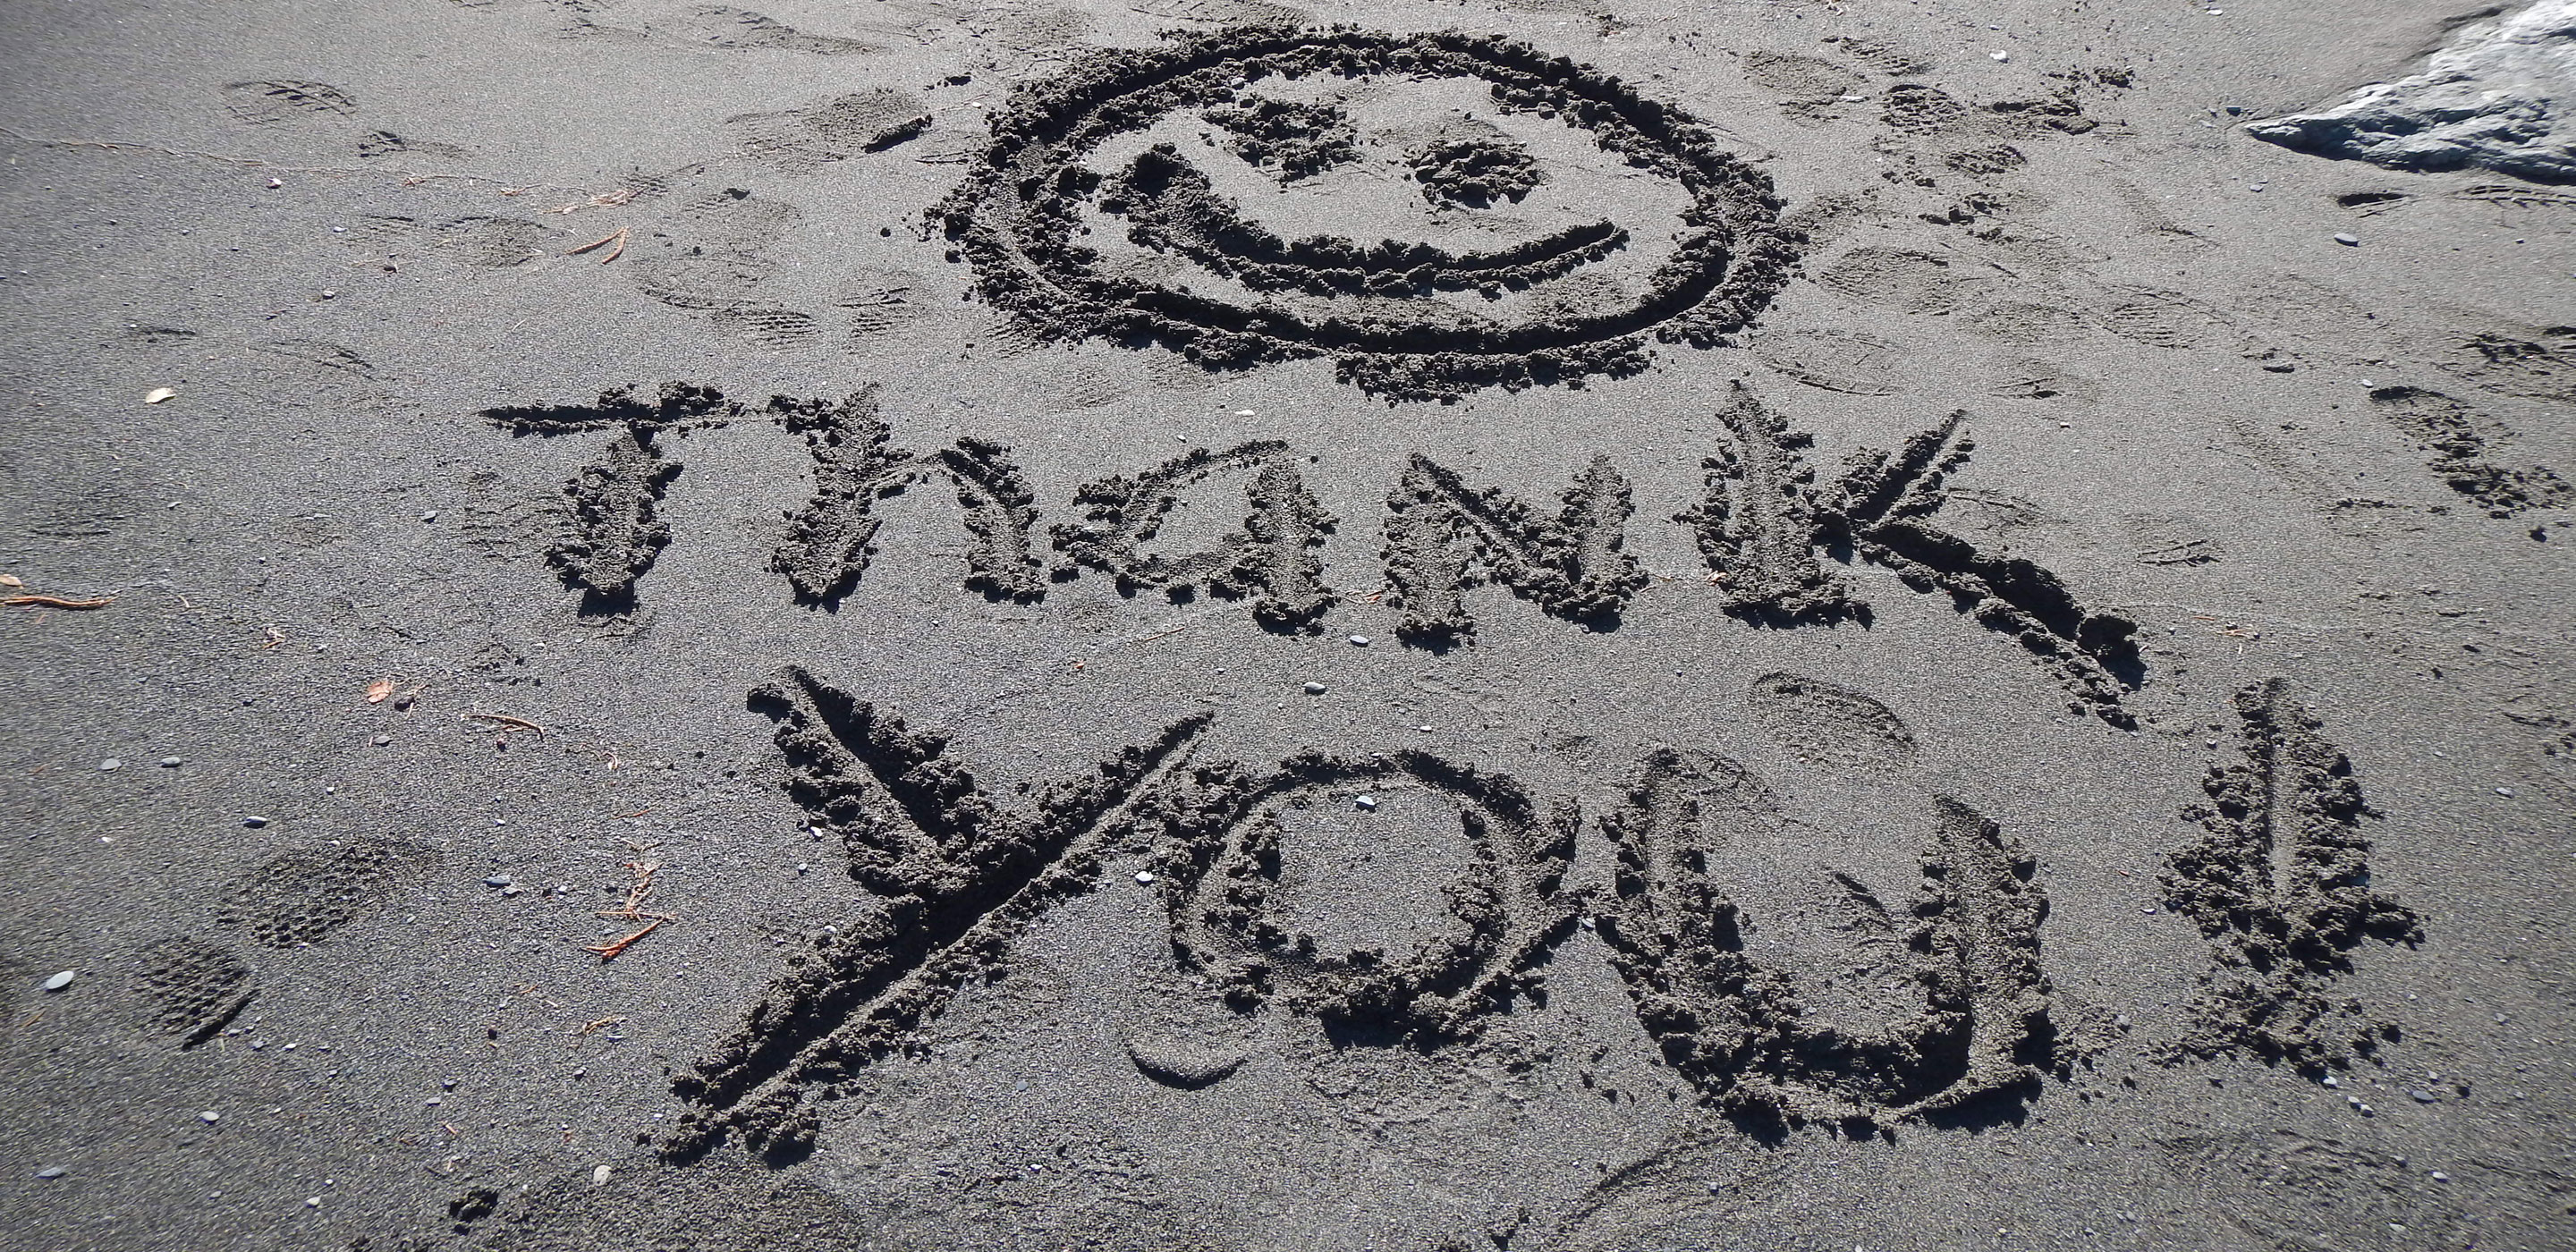 Rafting thank you in the sand